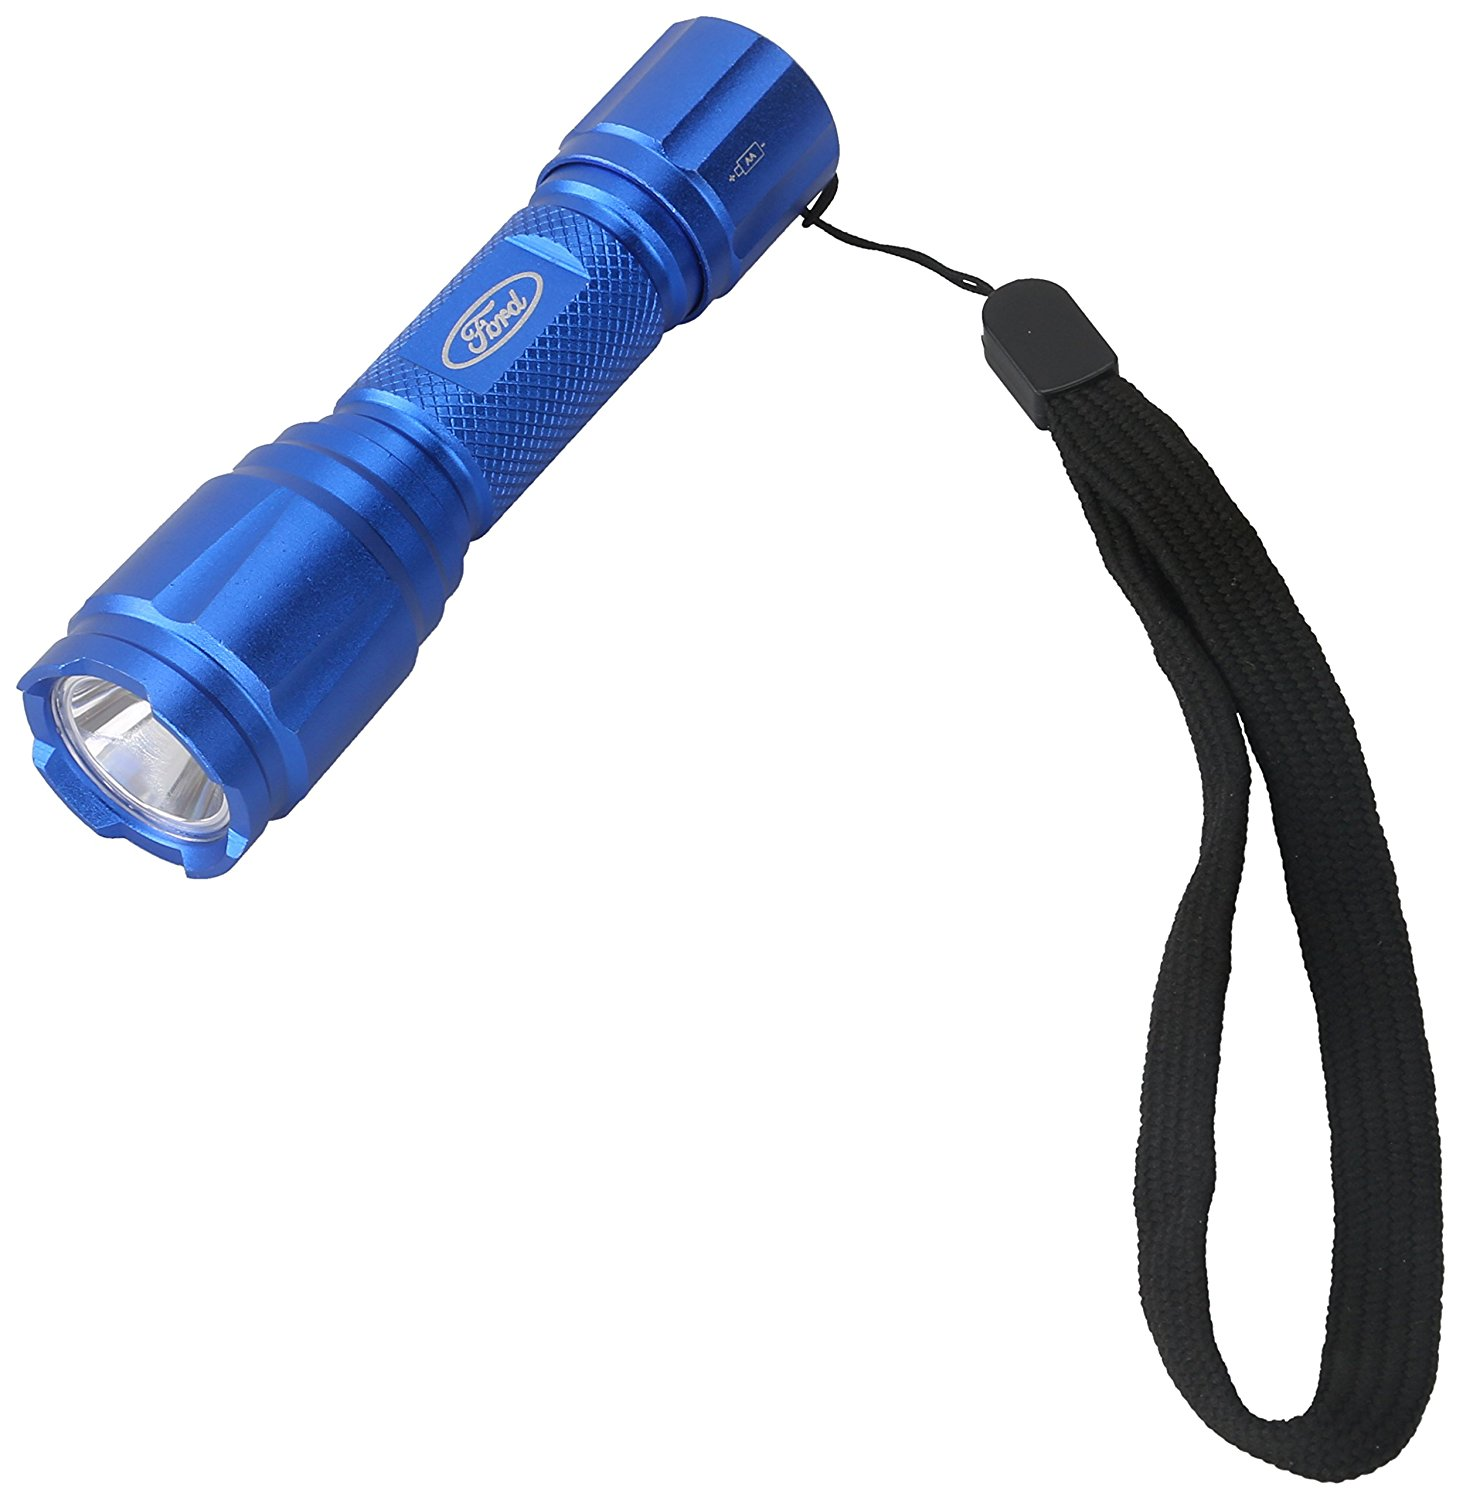 Ford Flashlight 65 Lumen 1-AA Battery